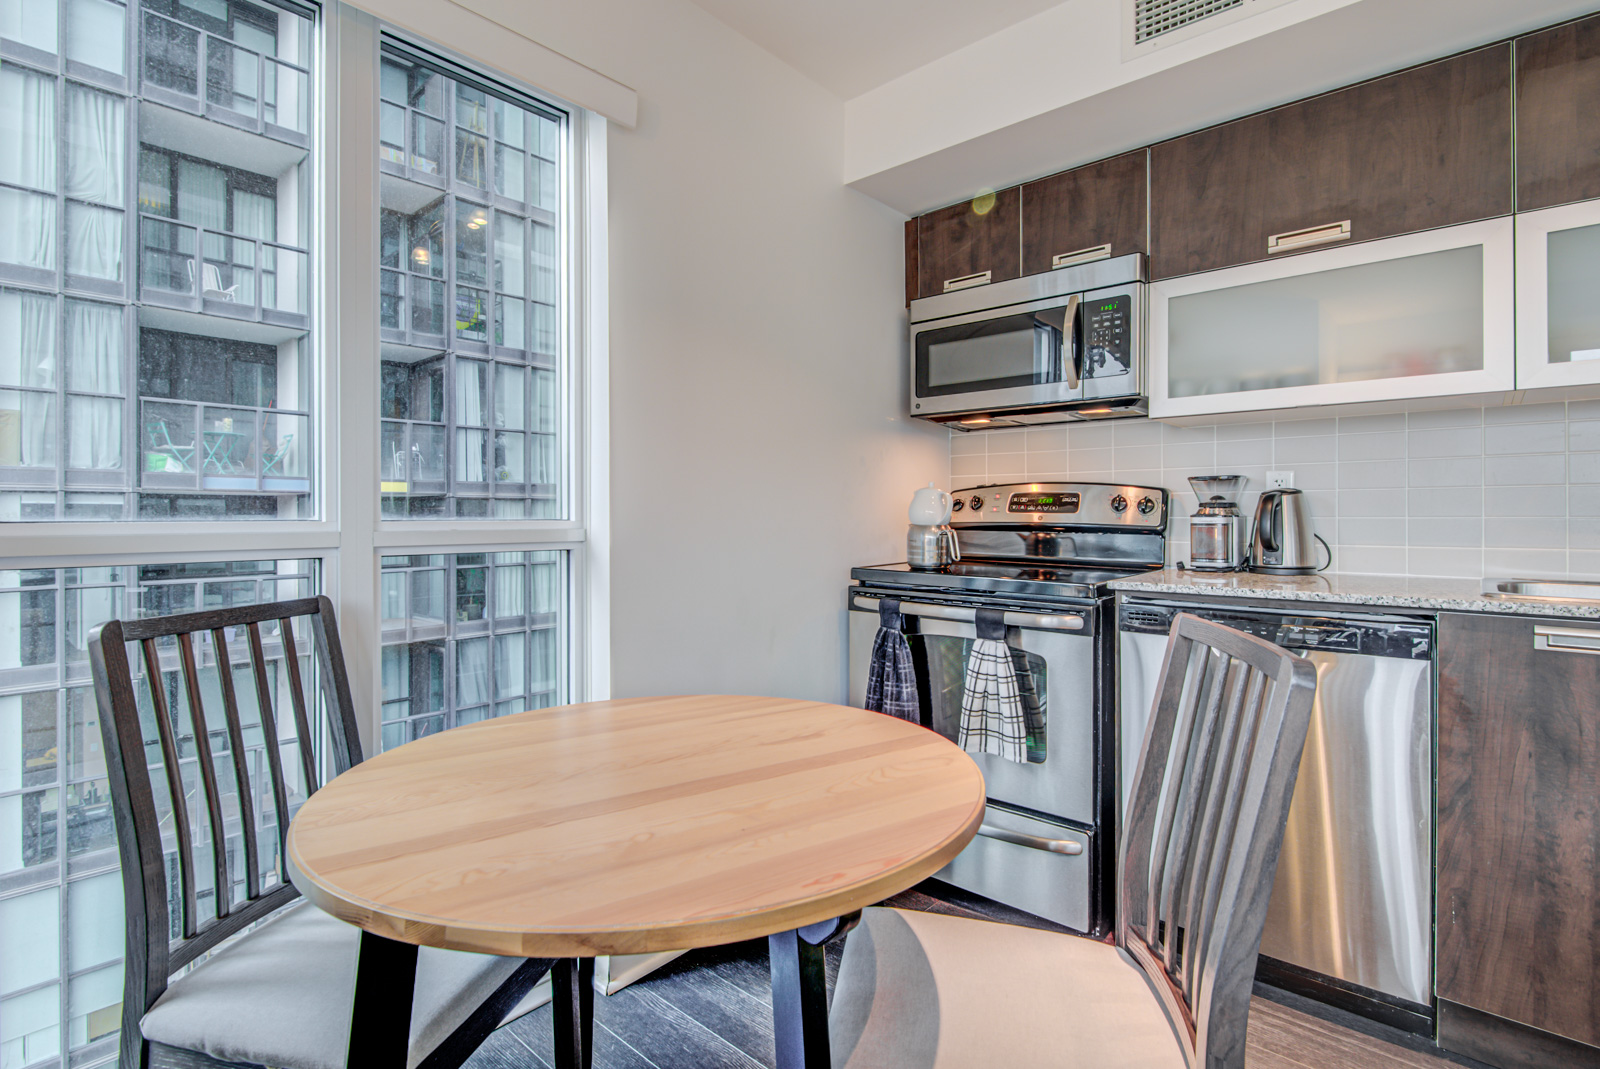 Kitchen with round dining table, stainless-steel stove, microwave, dishwasher and wooden cabinets.